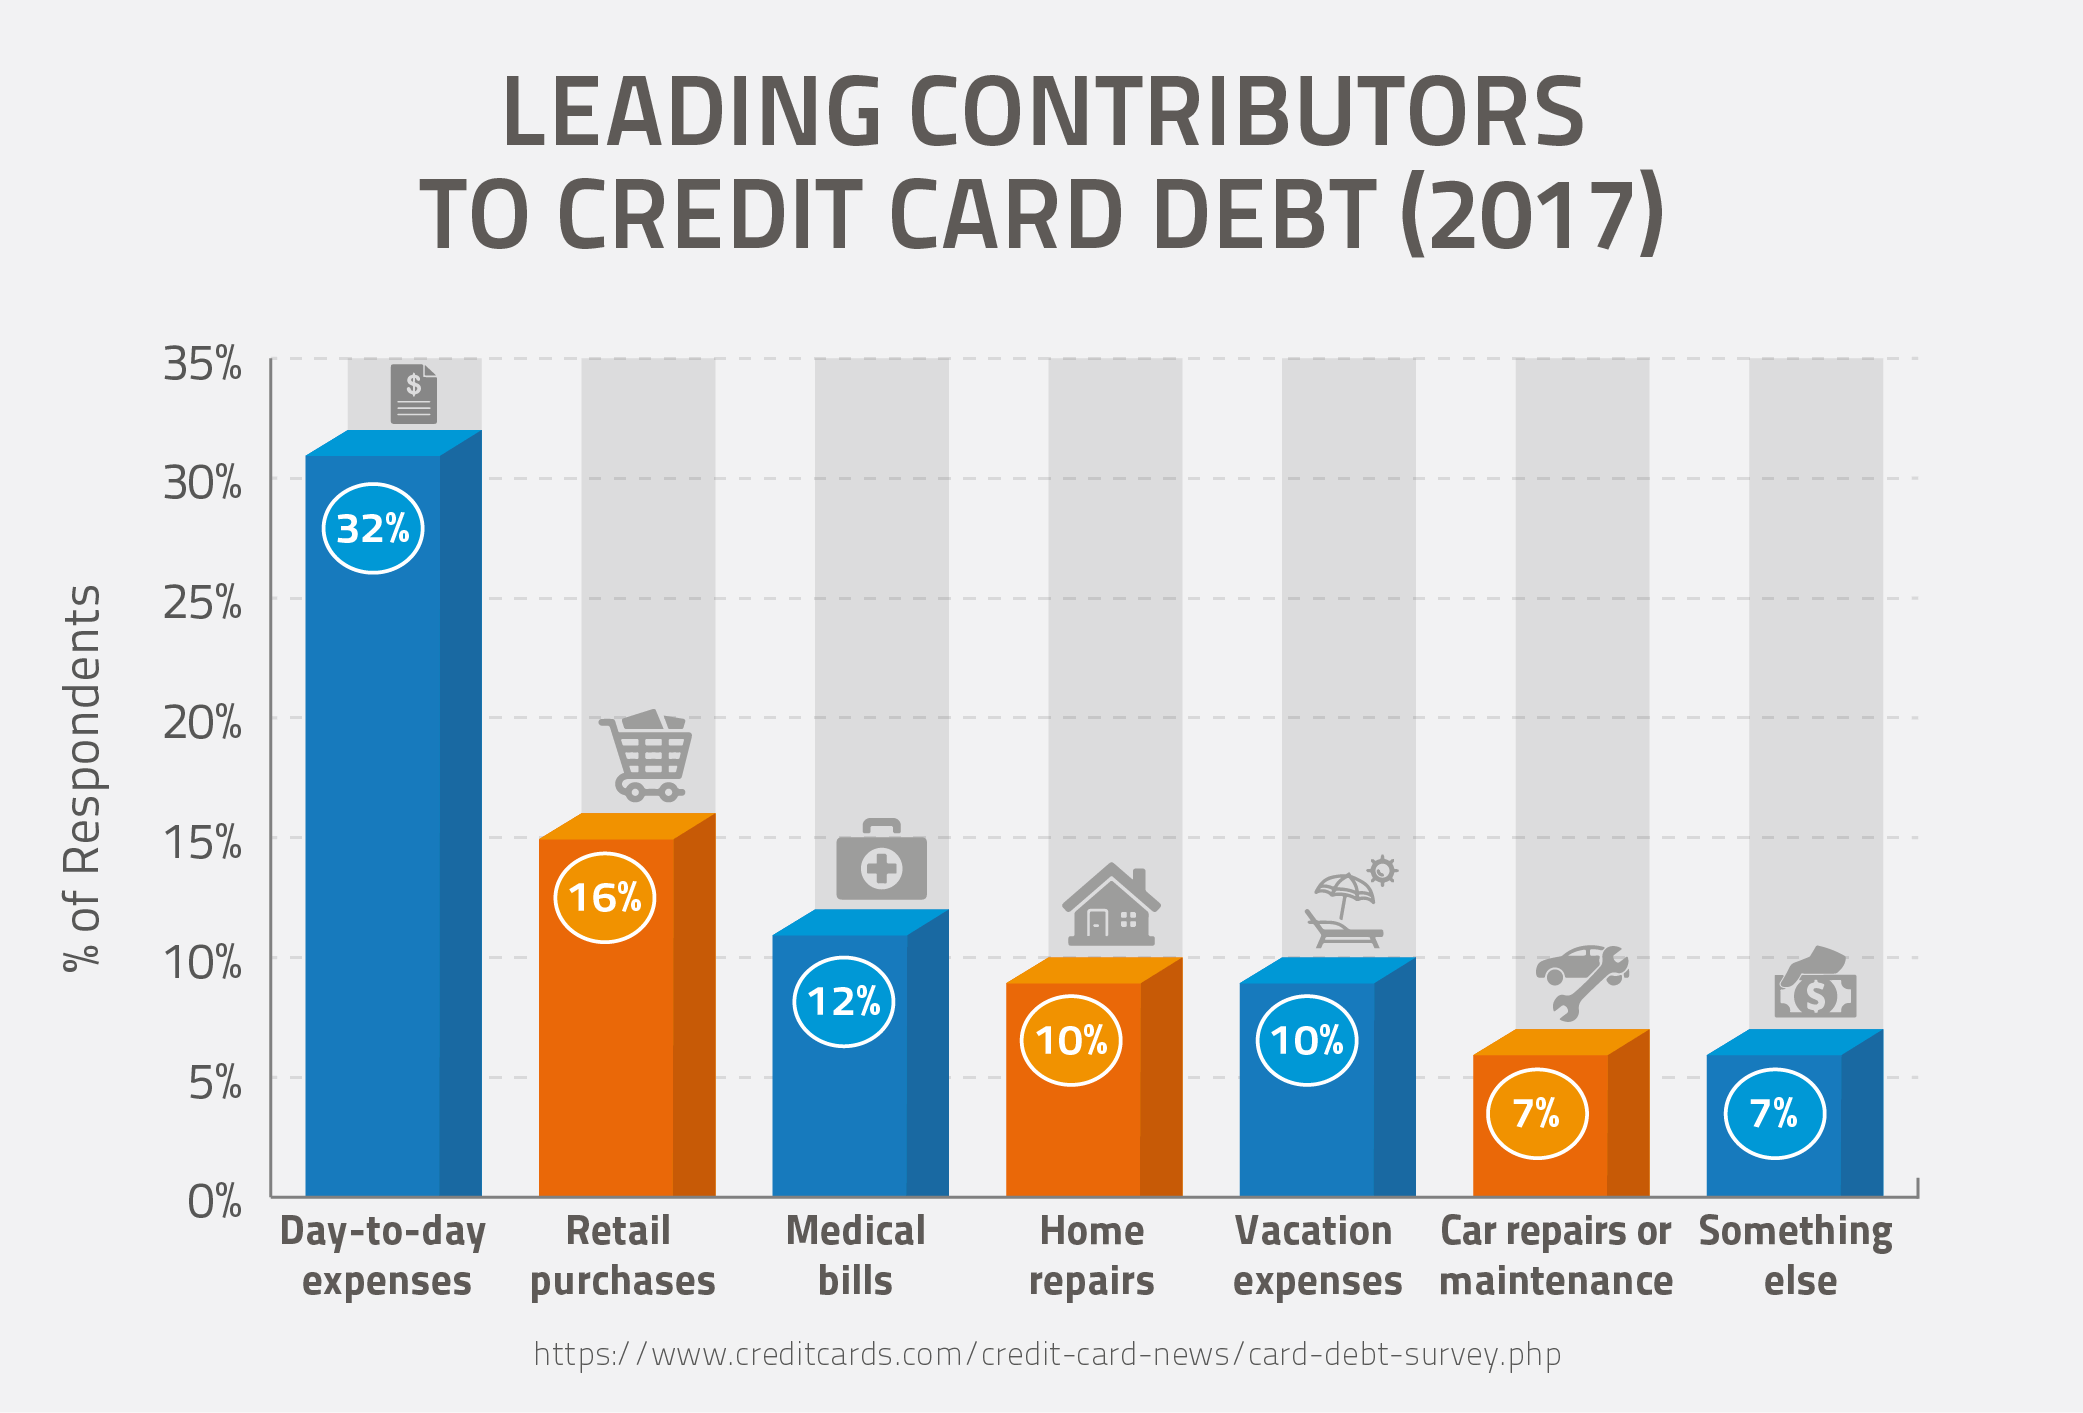 Leading Contributors to Credit Card Debt (2017)